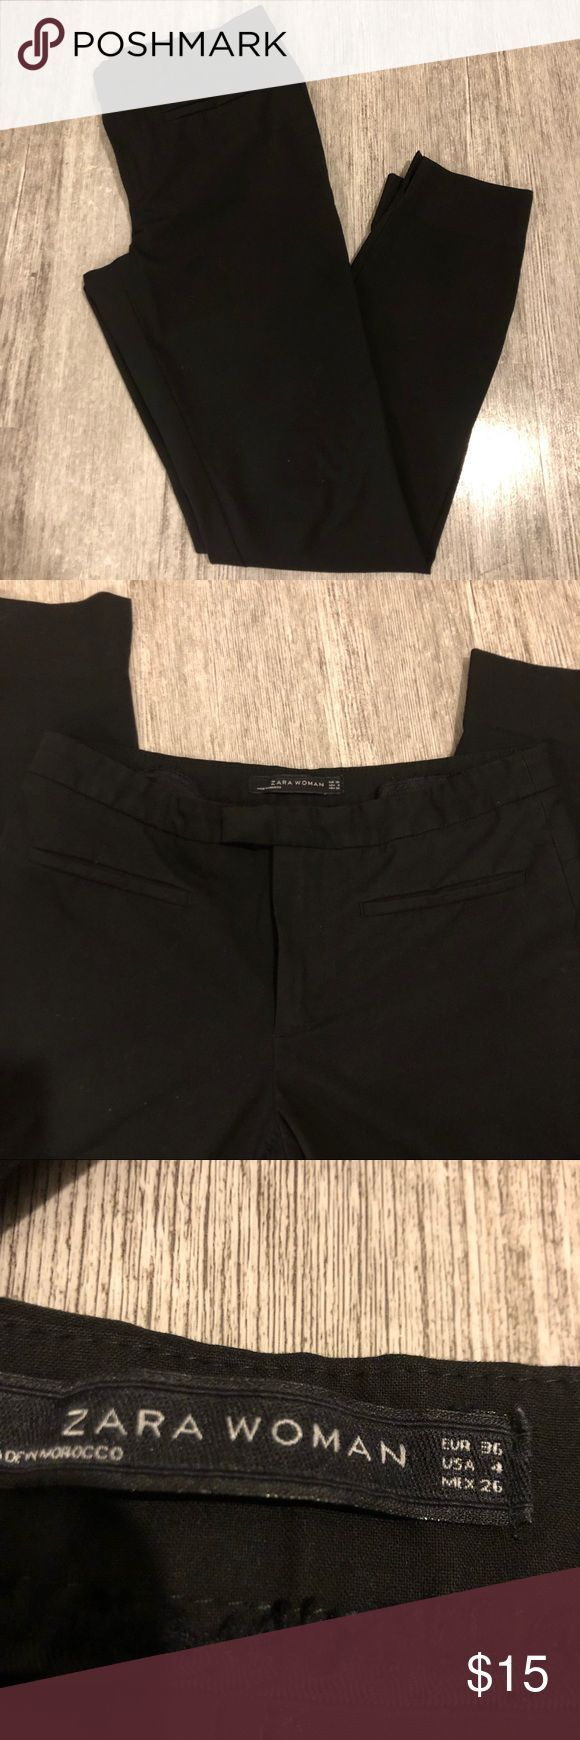 Zara Women Black Business Causal Work Pants Excellent used condition No rips or…